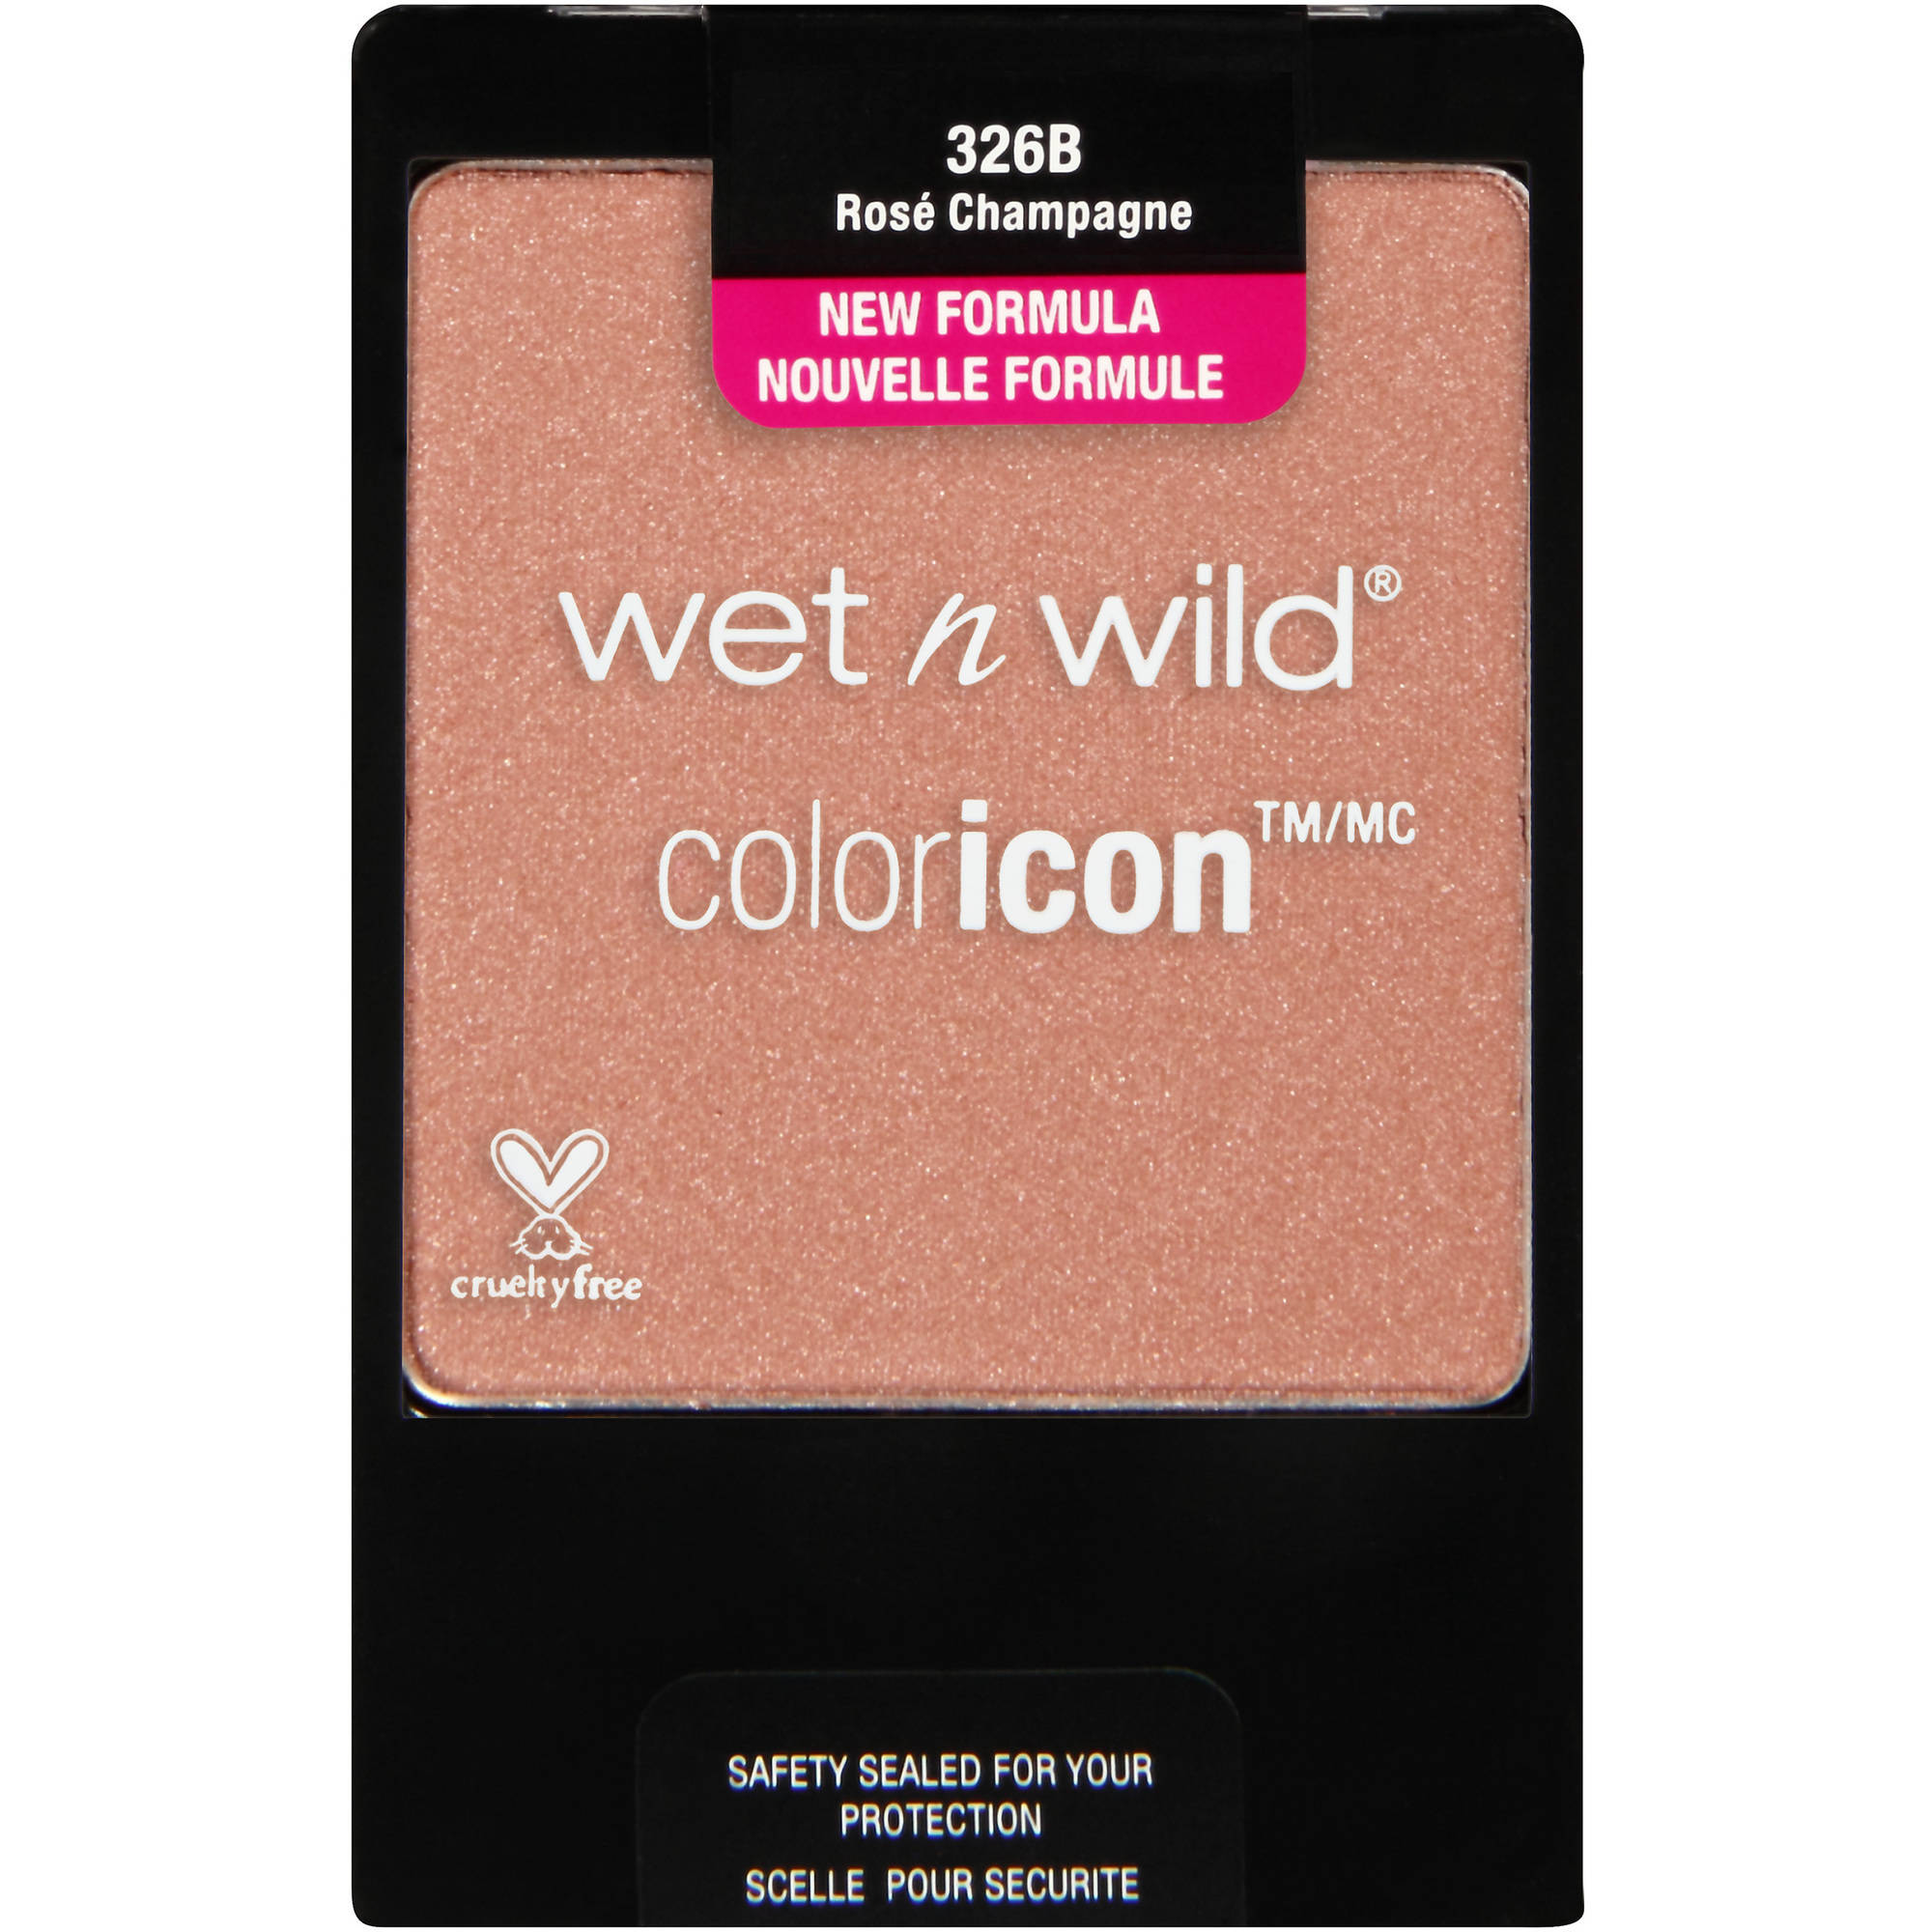 Wet n Wild ColorIcon Blush, 326B Rose Champagne, 0.20 oz